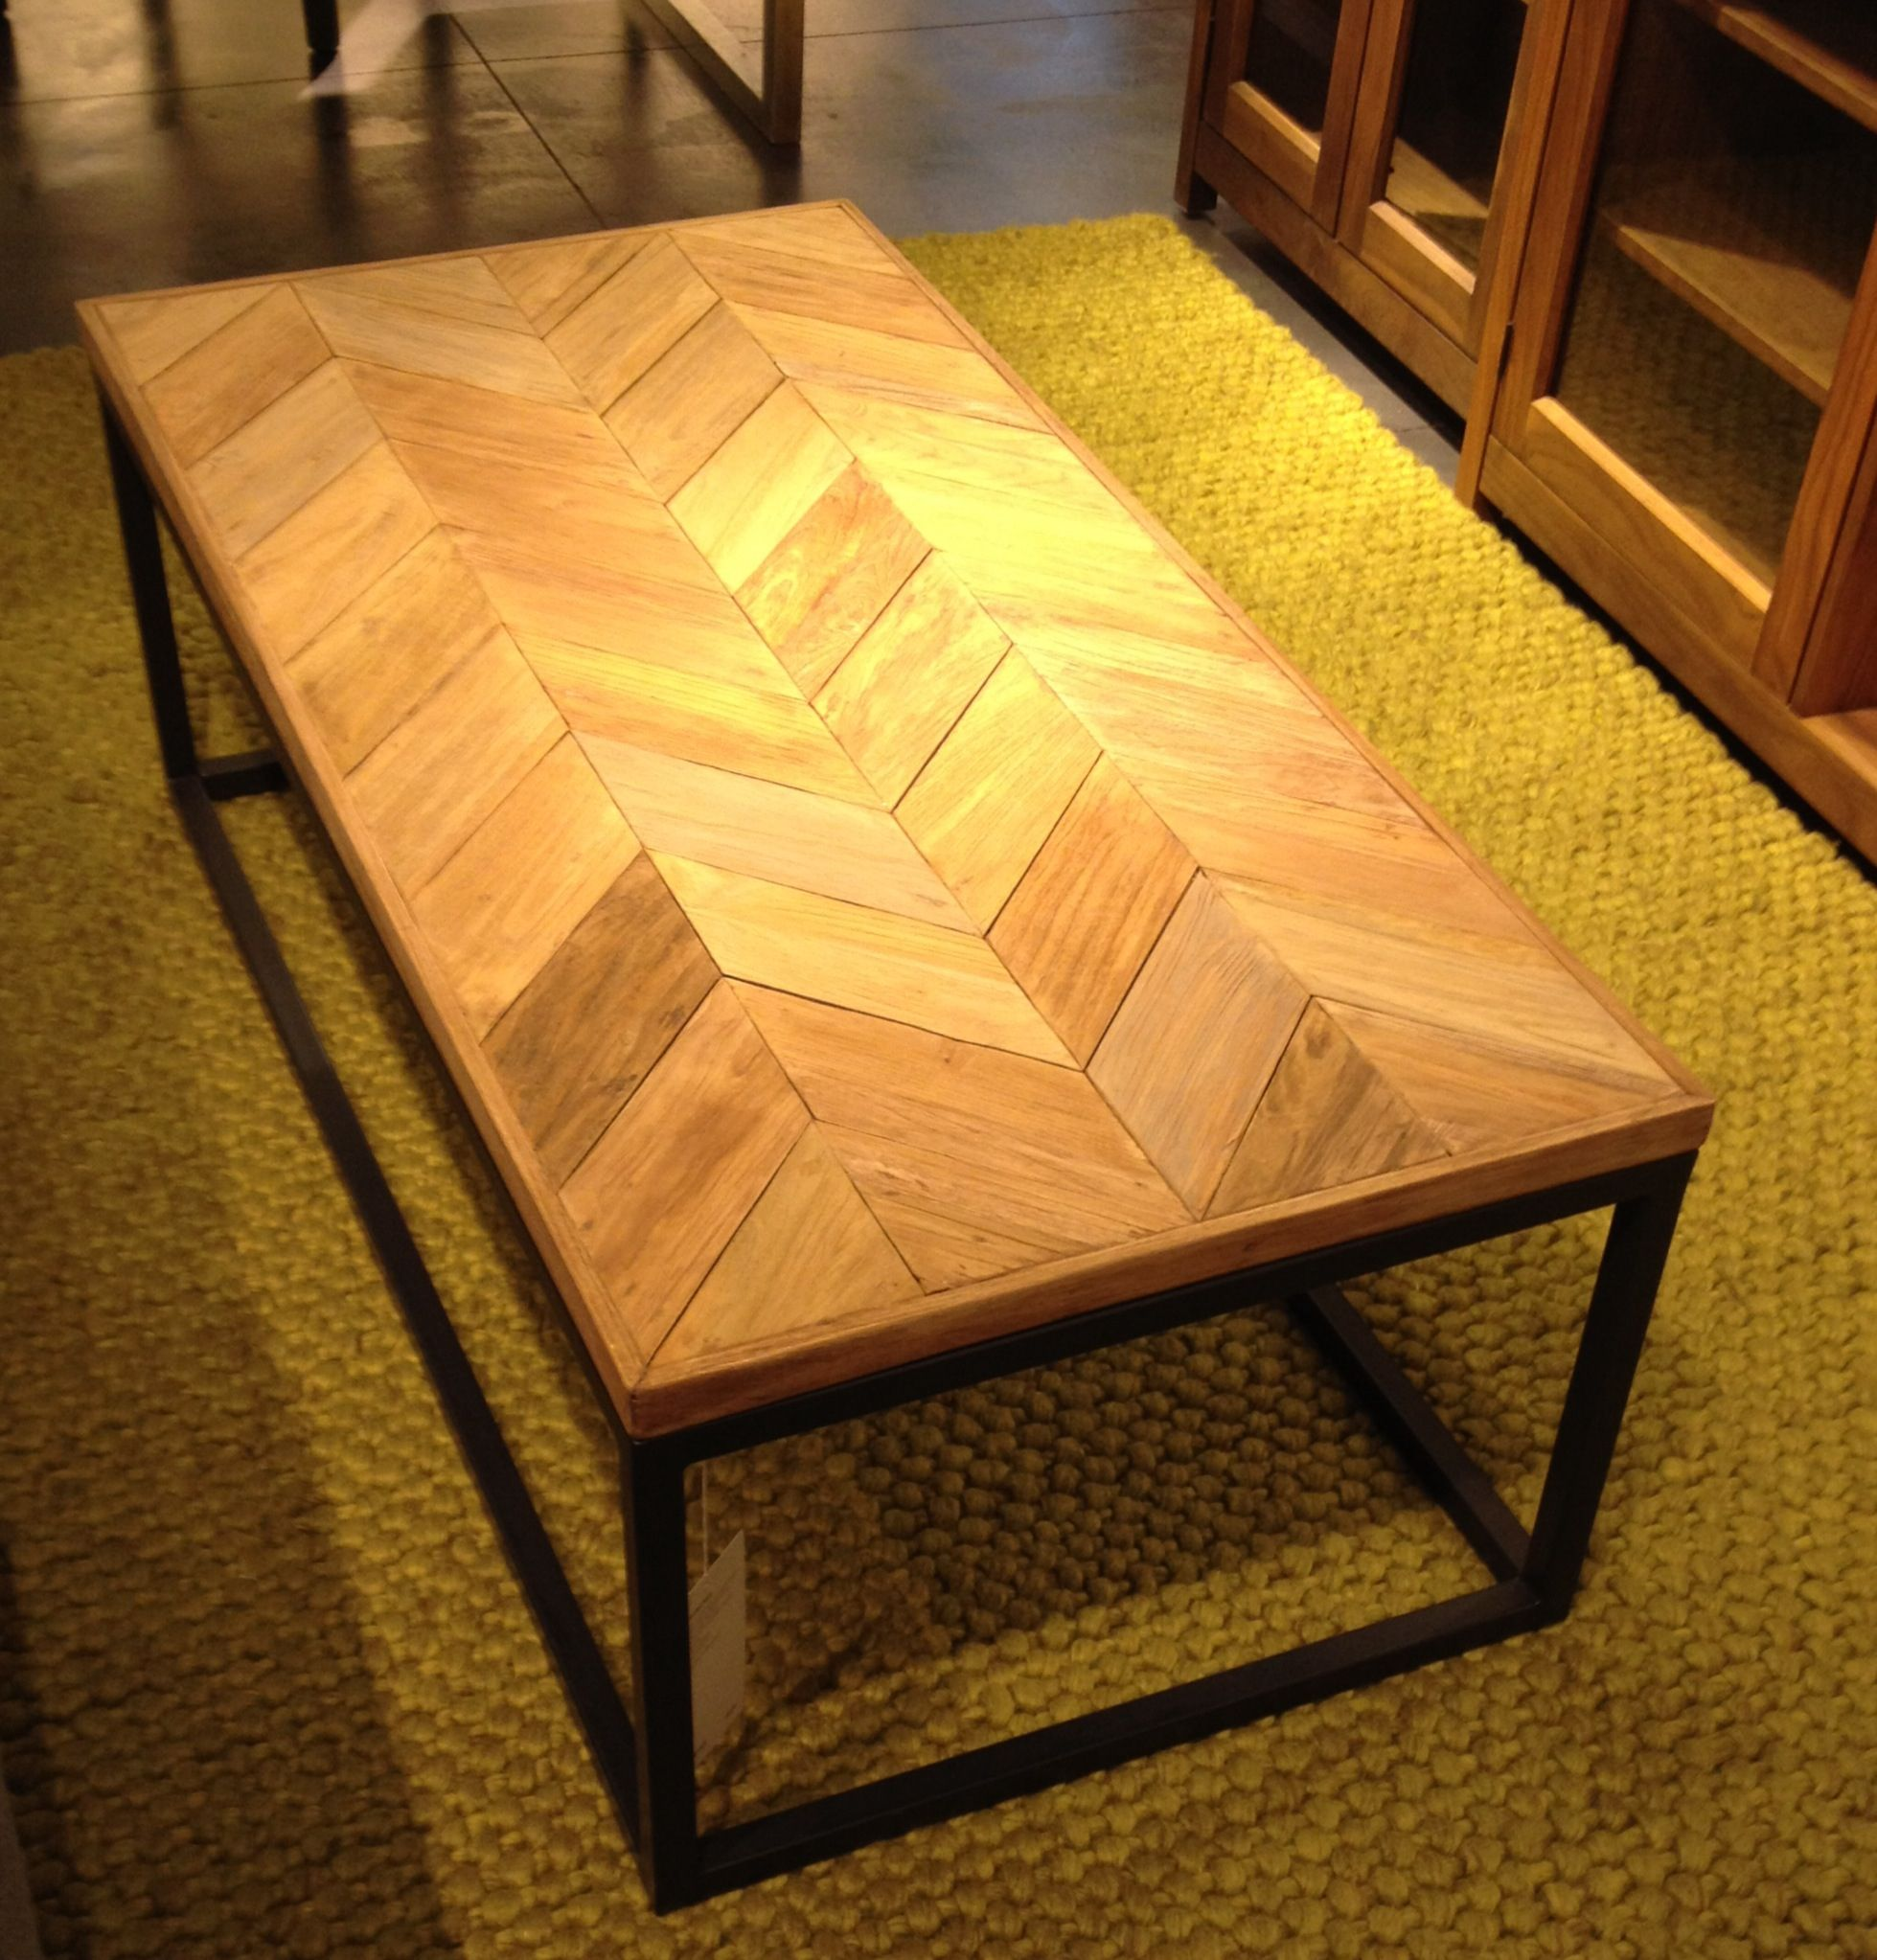 Crate and barrel coffee table home pinterest barrel coffee crate and barrel coffee table geotapseo Images